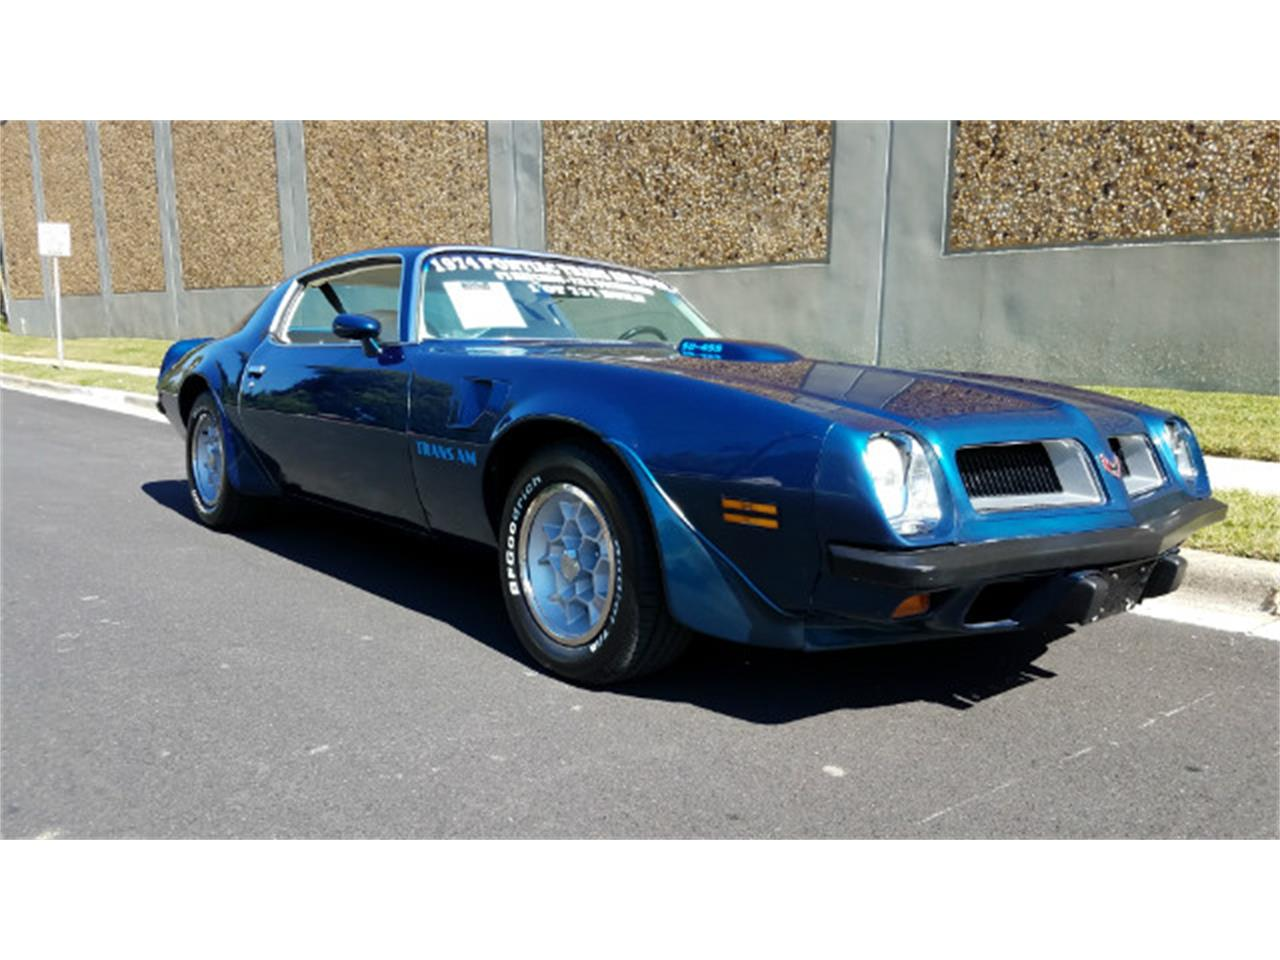 Large Picture of 1974 Pontiac Firebird Trans Am located in Maryland - $78,900.00 Offered by Universal Auto Sales - MO89